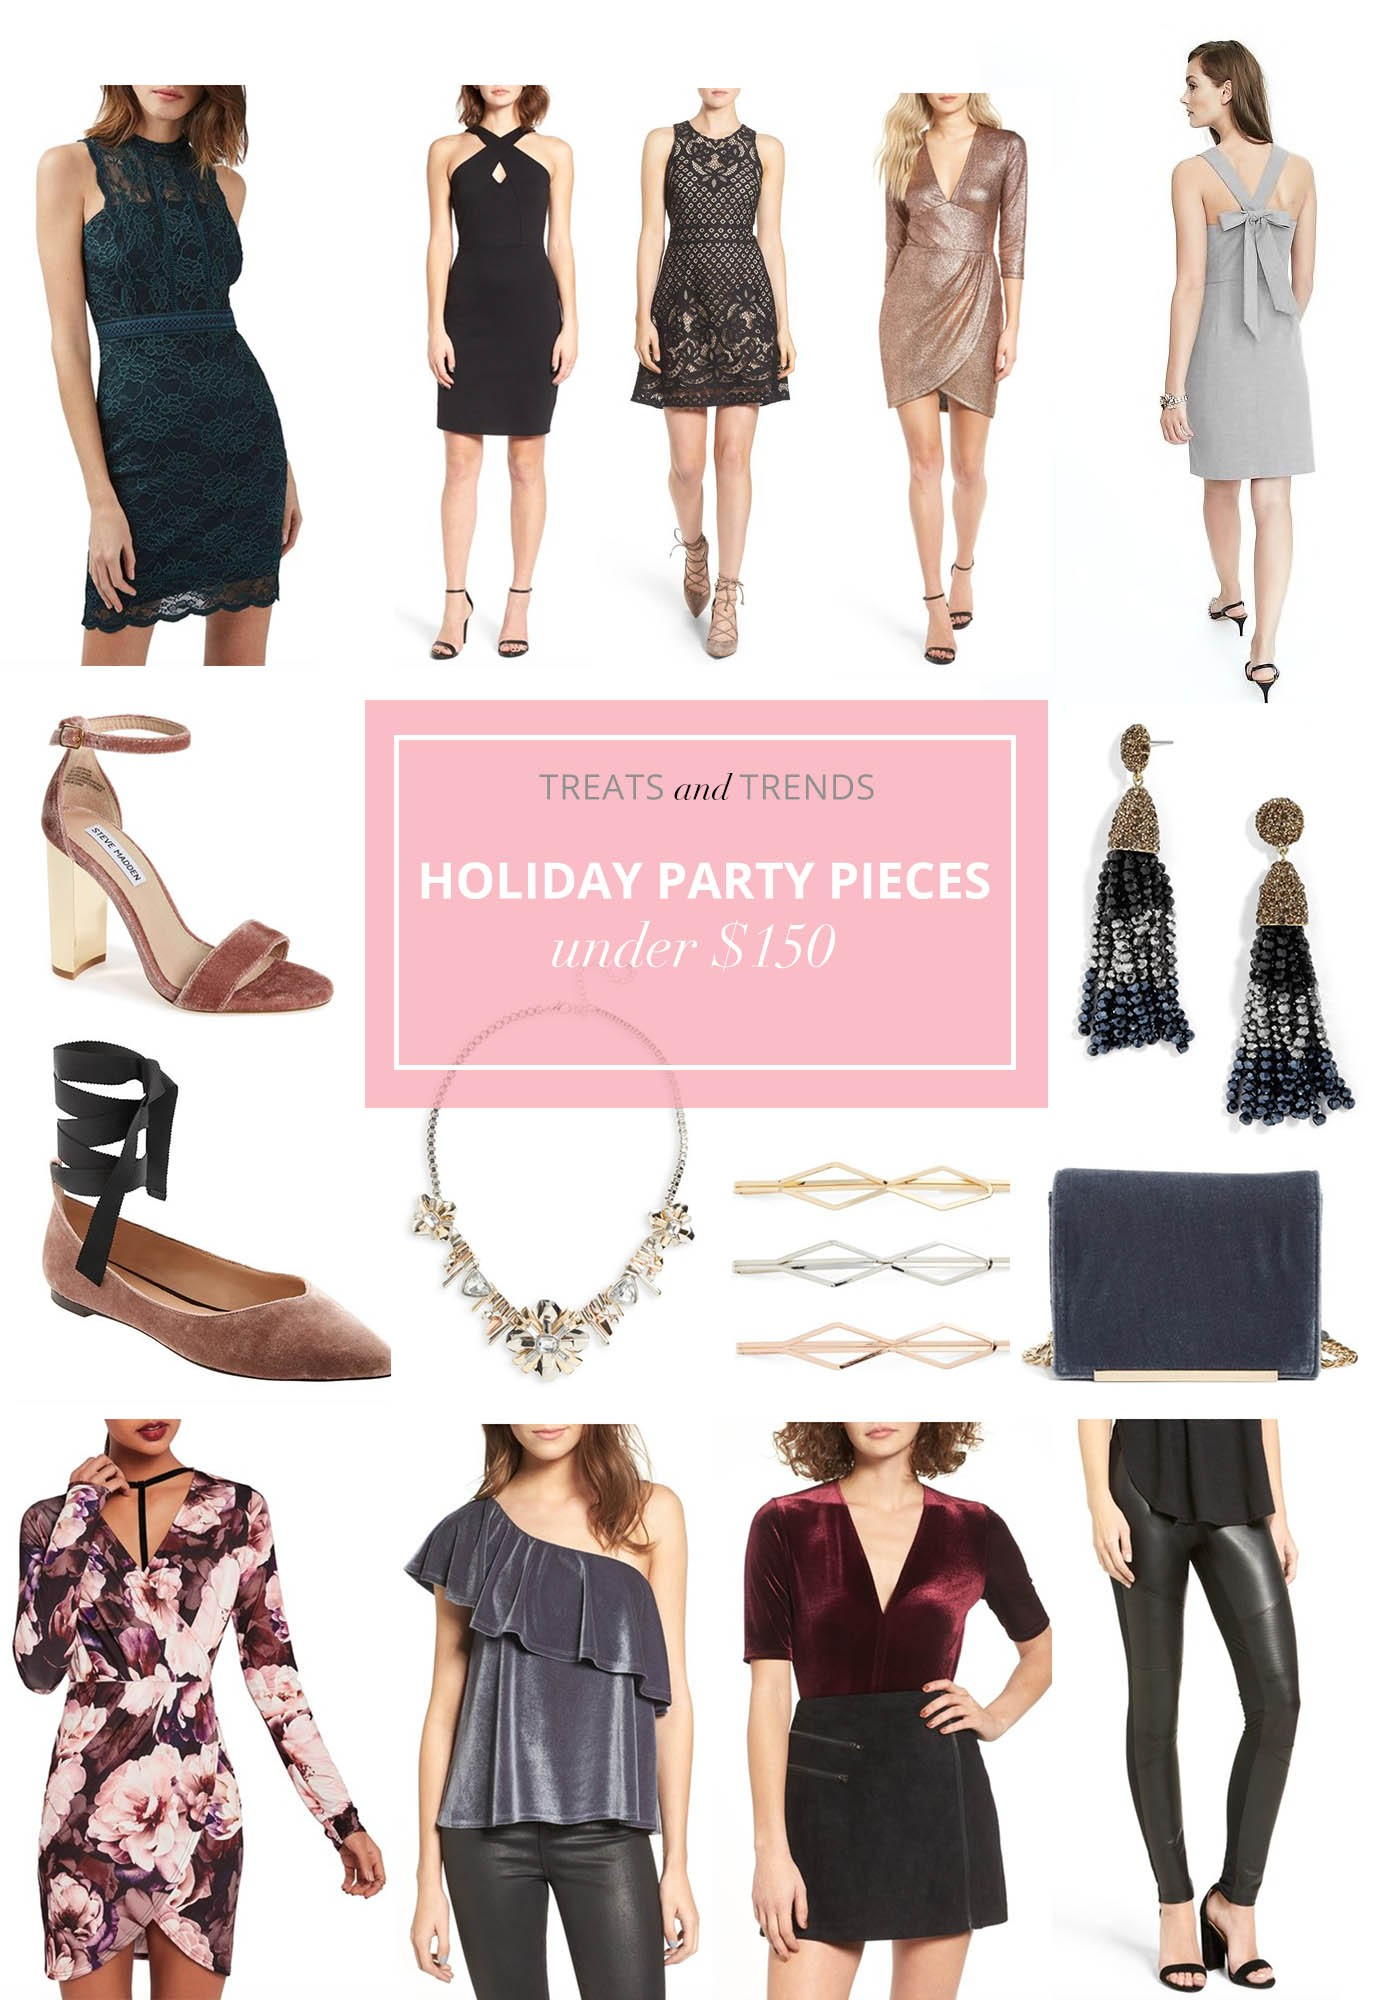 holiday party dresses under $150, Christmas party outfit, holiday shopping, Treats and Trends, fashion blog